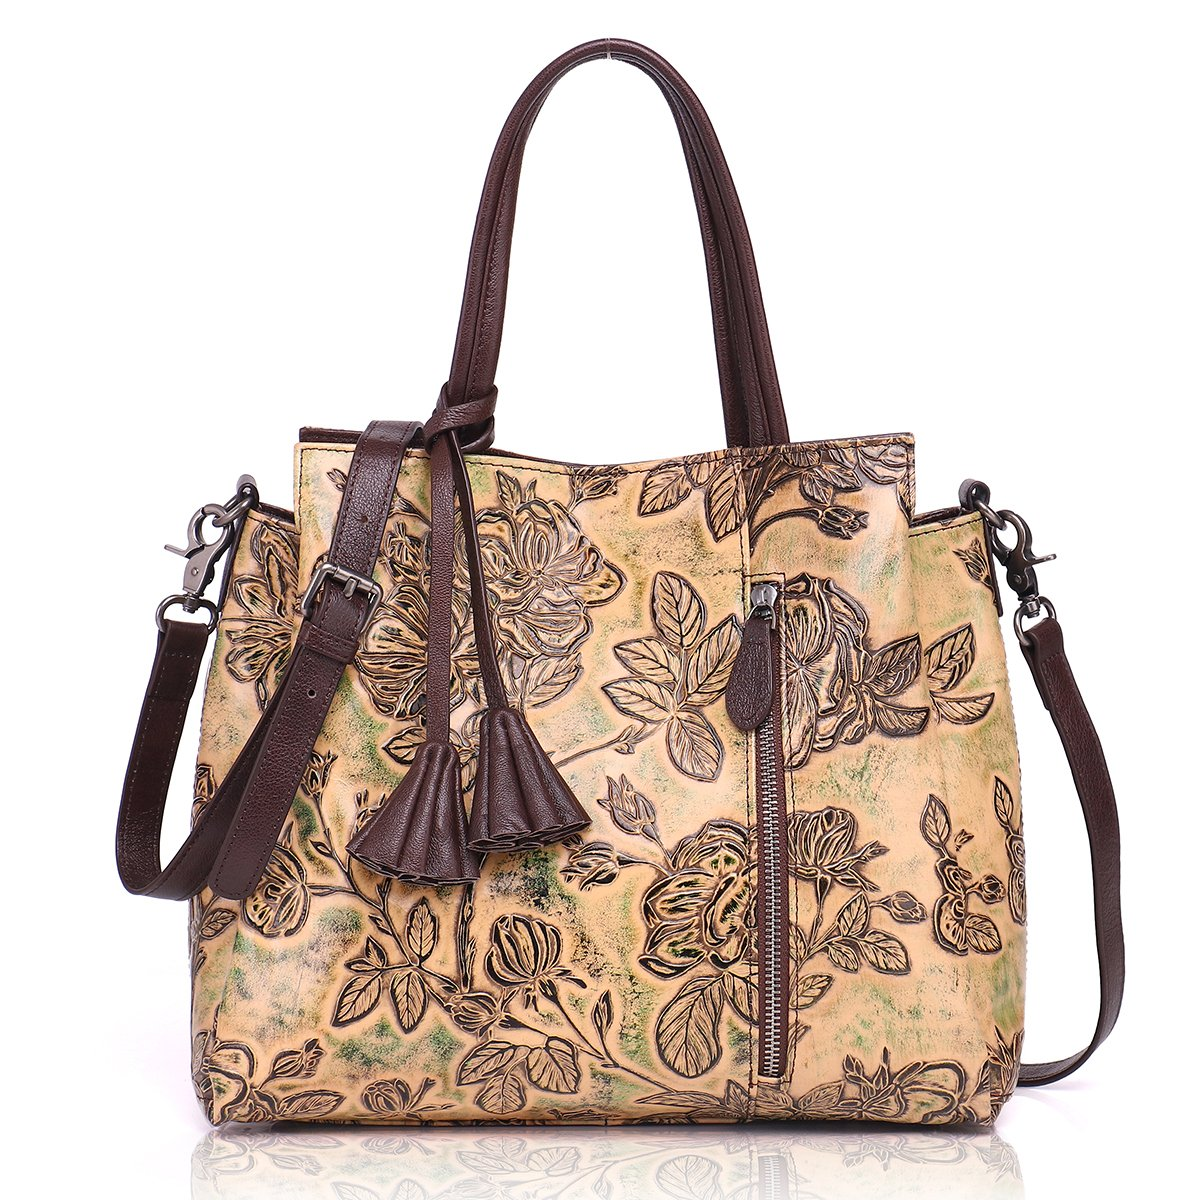 APHISON Designer Unique Embossed Floral Cowhide Leather Tote Style Ladies Top Handle Bags Handbags (BROWN)